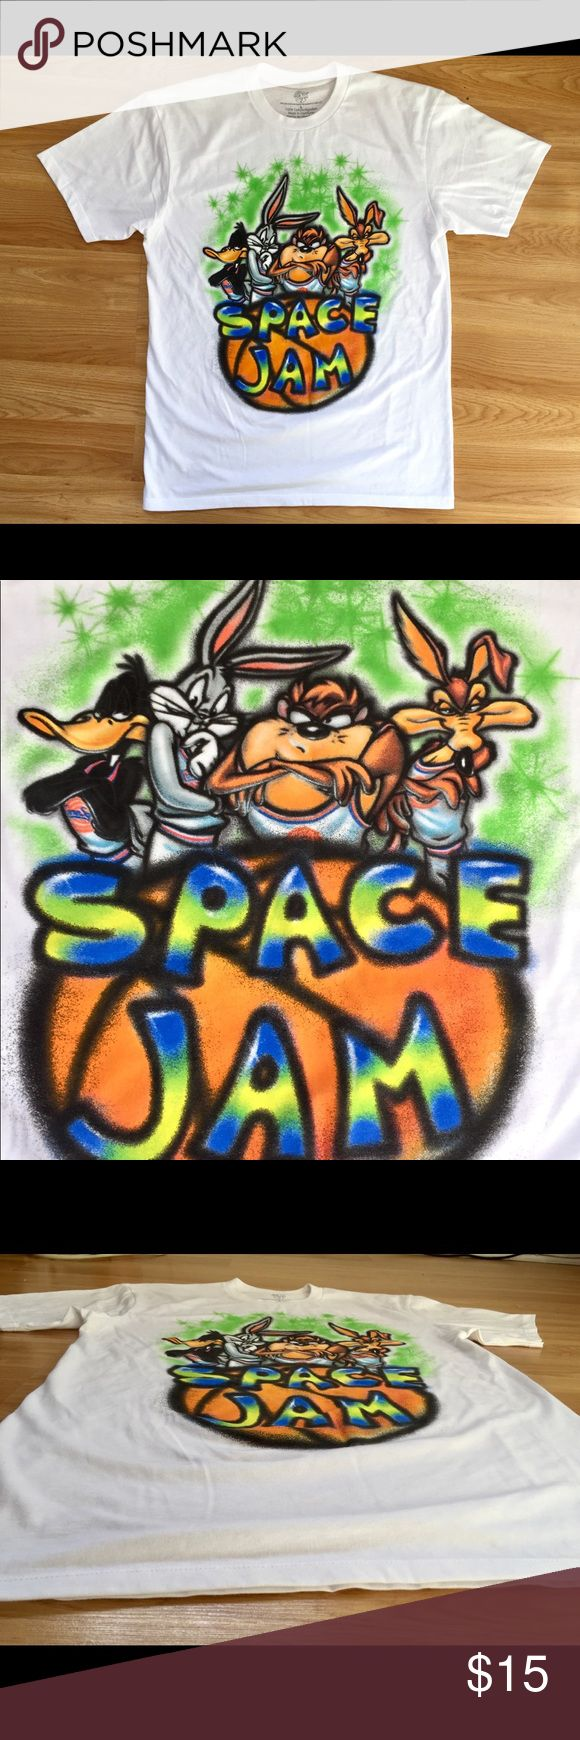 Looney Tunes Space Jam Airbrush style t-shirt Pre owned. Good condition Vintage style tee. Would style great with space jam Jordan 11's. Looney Tunes Shirts Tees - Short Sleeve